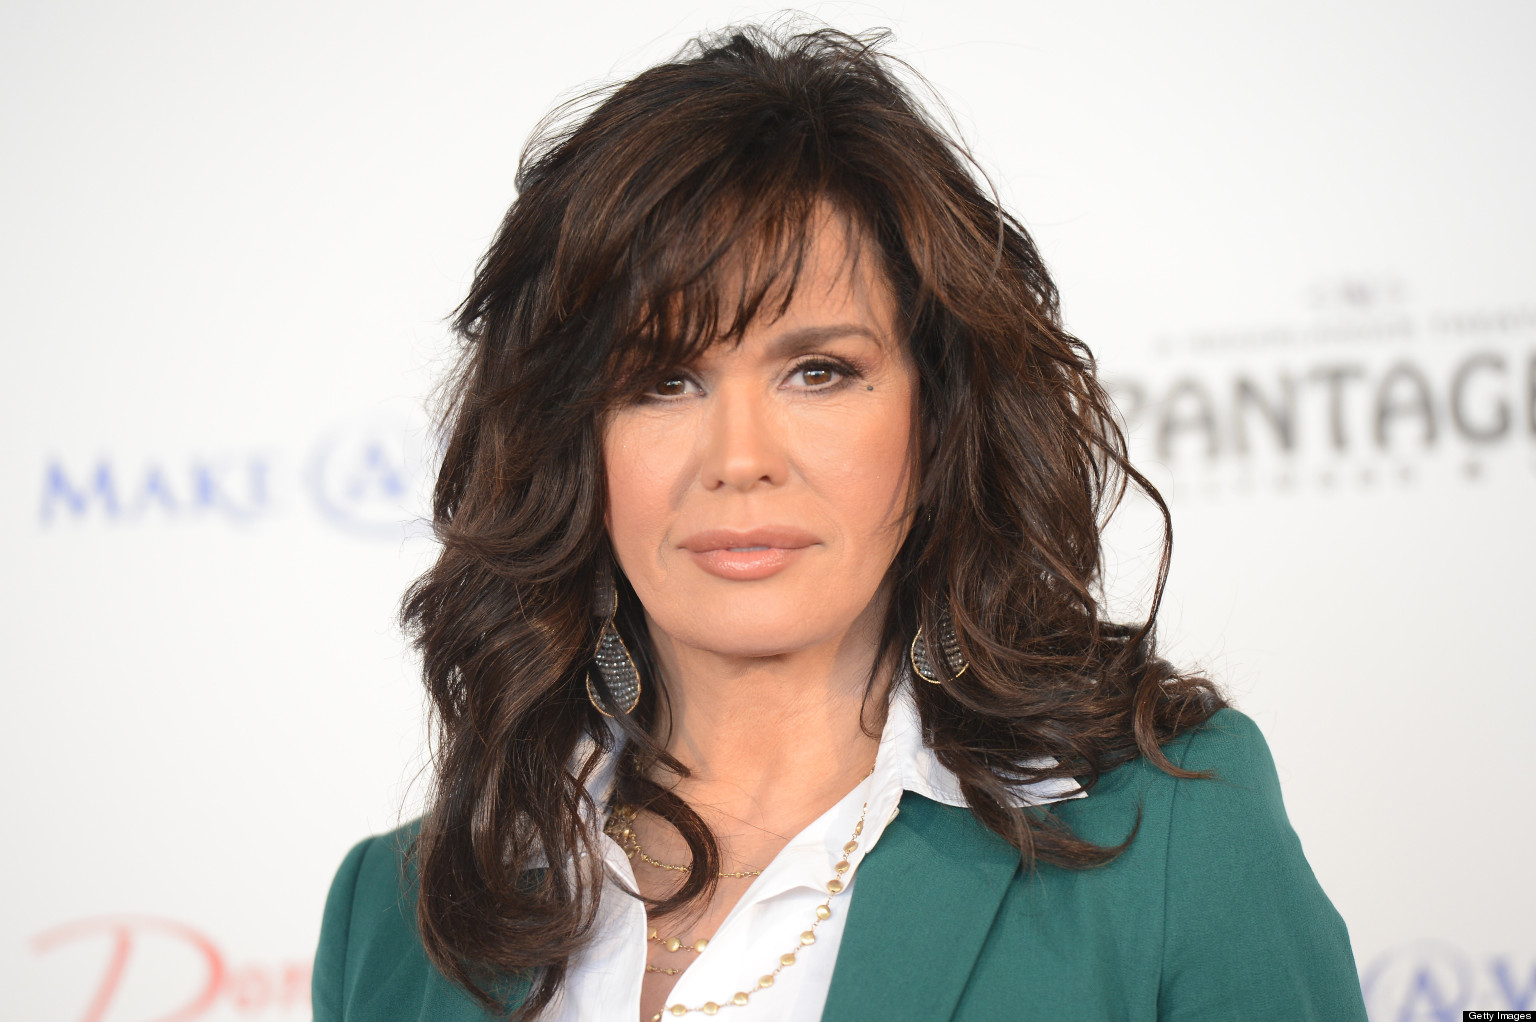 August Ame Death >> Dear Donald Trump: You Know Things Are Bad When Marie Osmond Backs Out of the Inauguration ...